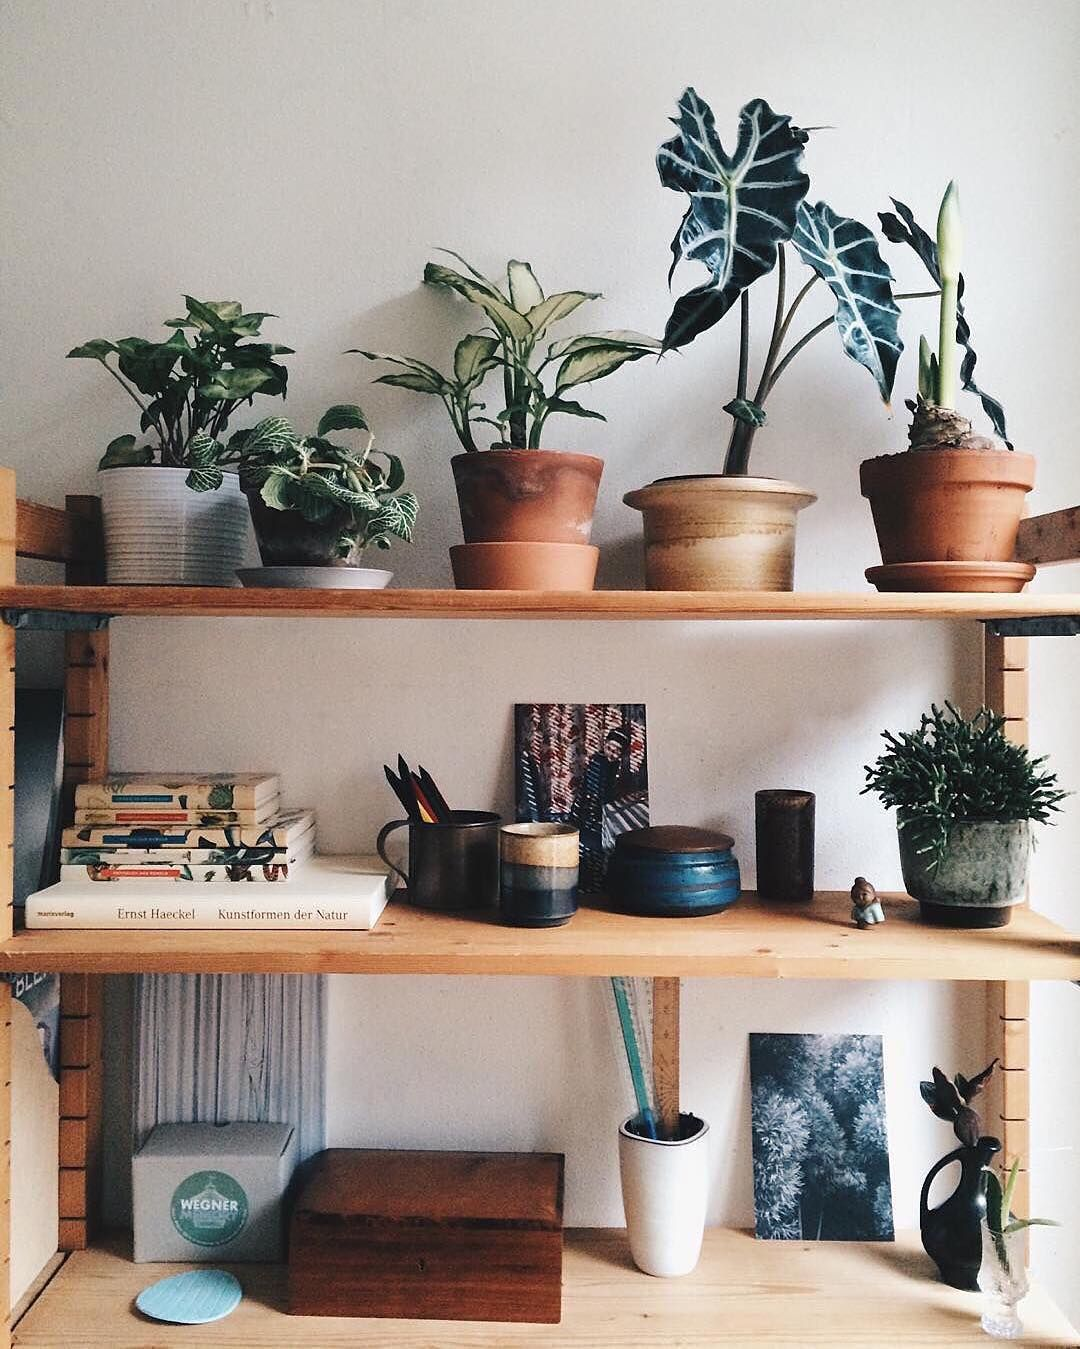 I Just Love This House: Just Love This Plant Shelfie From The #interiorrewilding